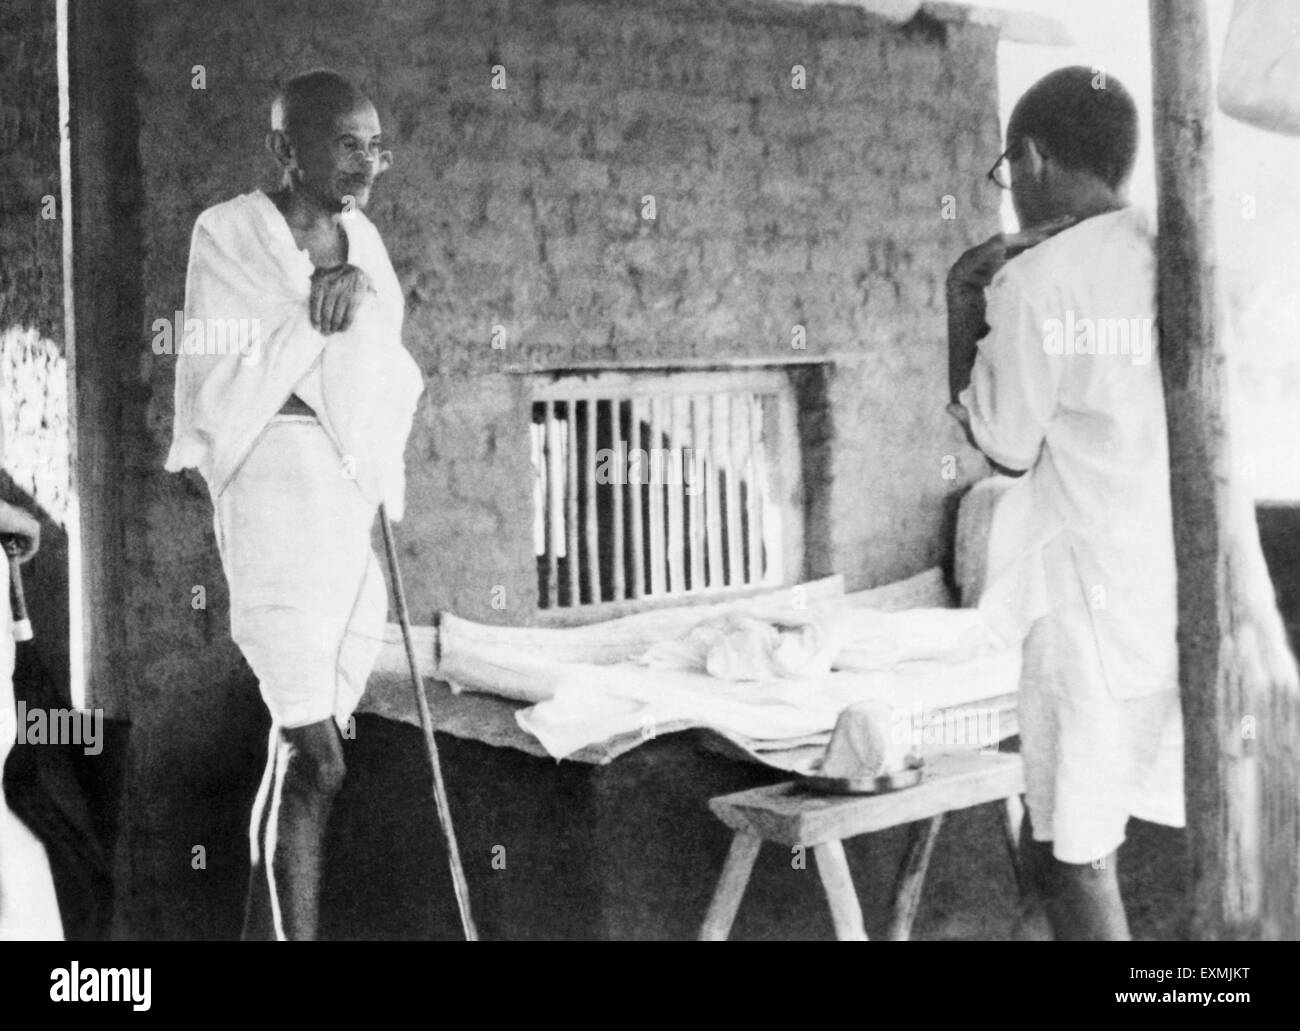 Mahatma Gandhi talking with J C Kumarappa at Sevagram Ashram ; 1940 NO MR - Stock Image